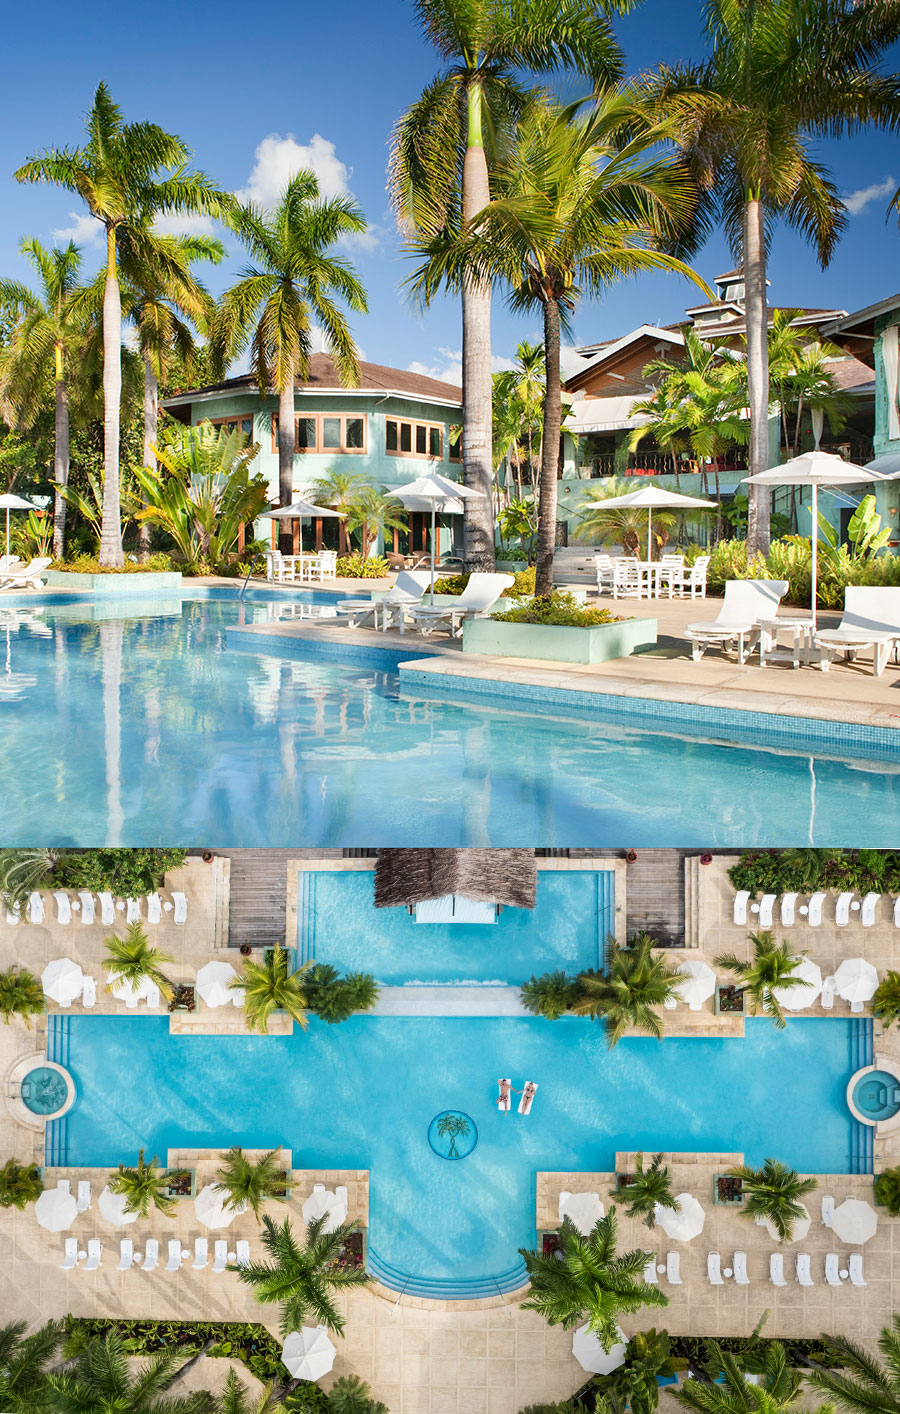 apple vacations jamaica destination wedding couples resorts negril tropical wedding swimming pool